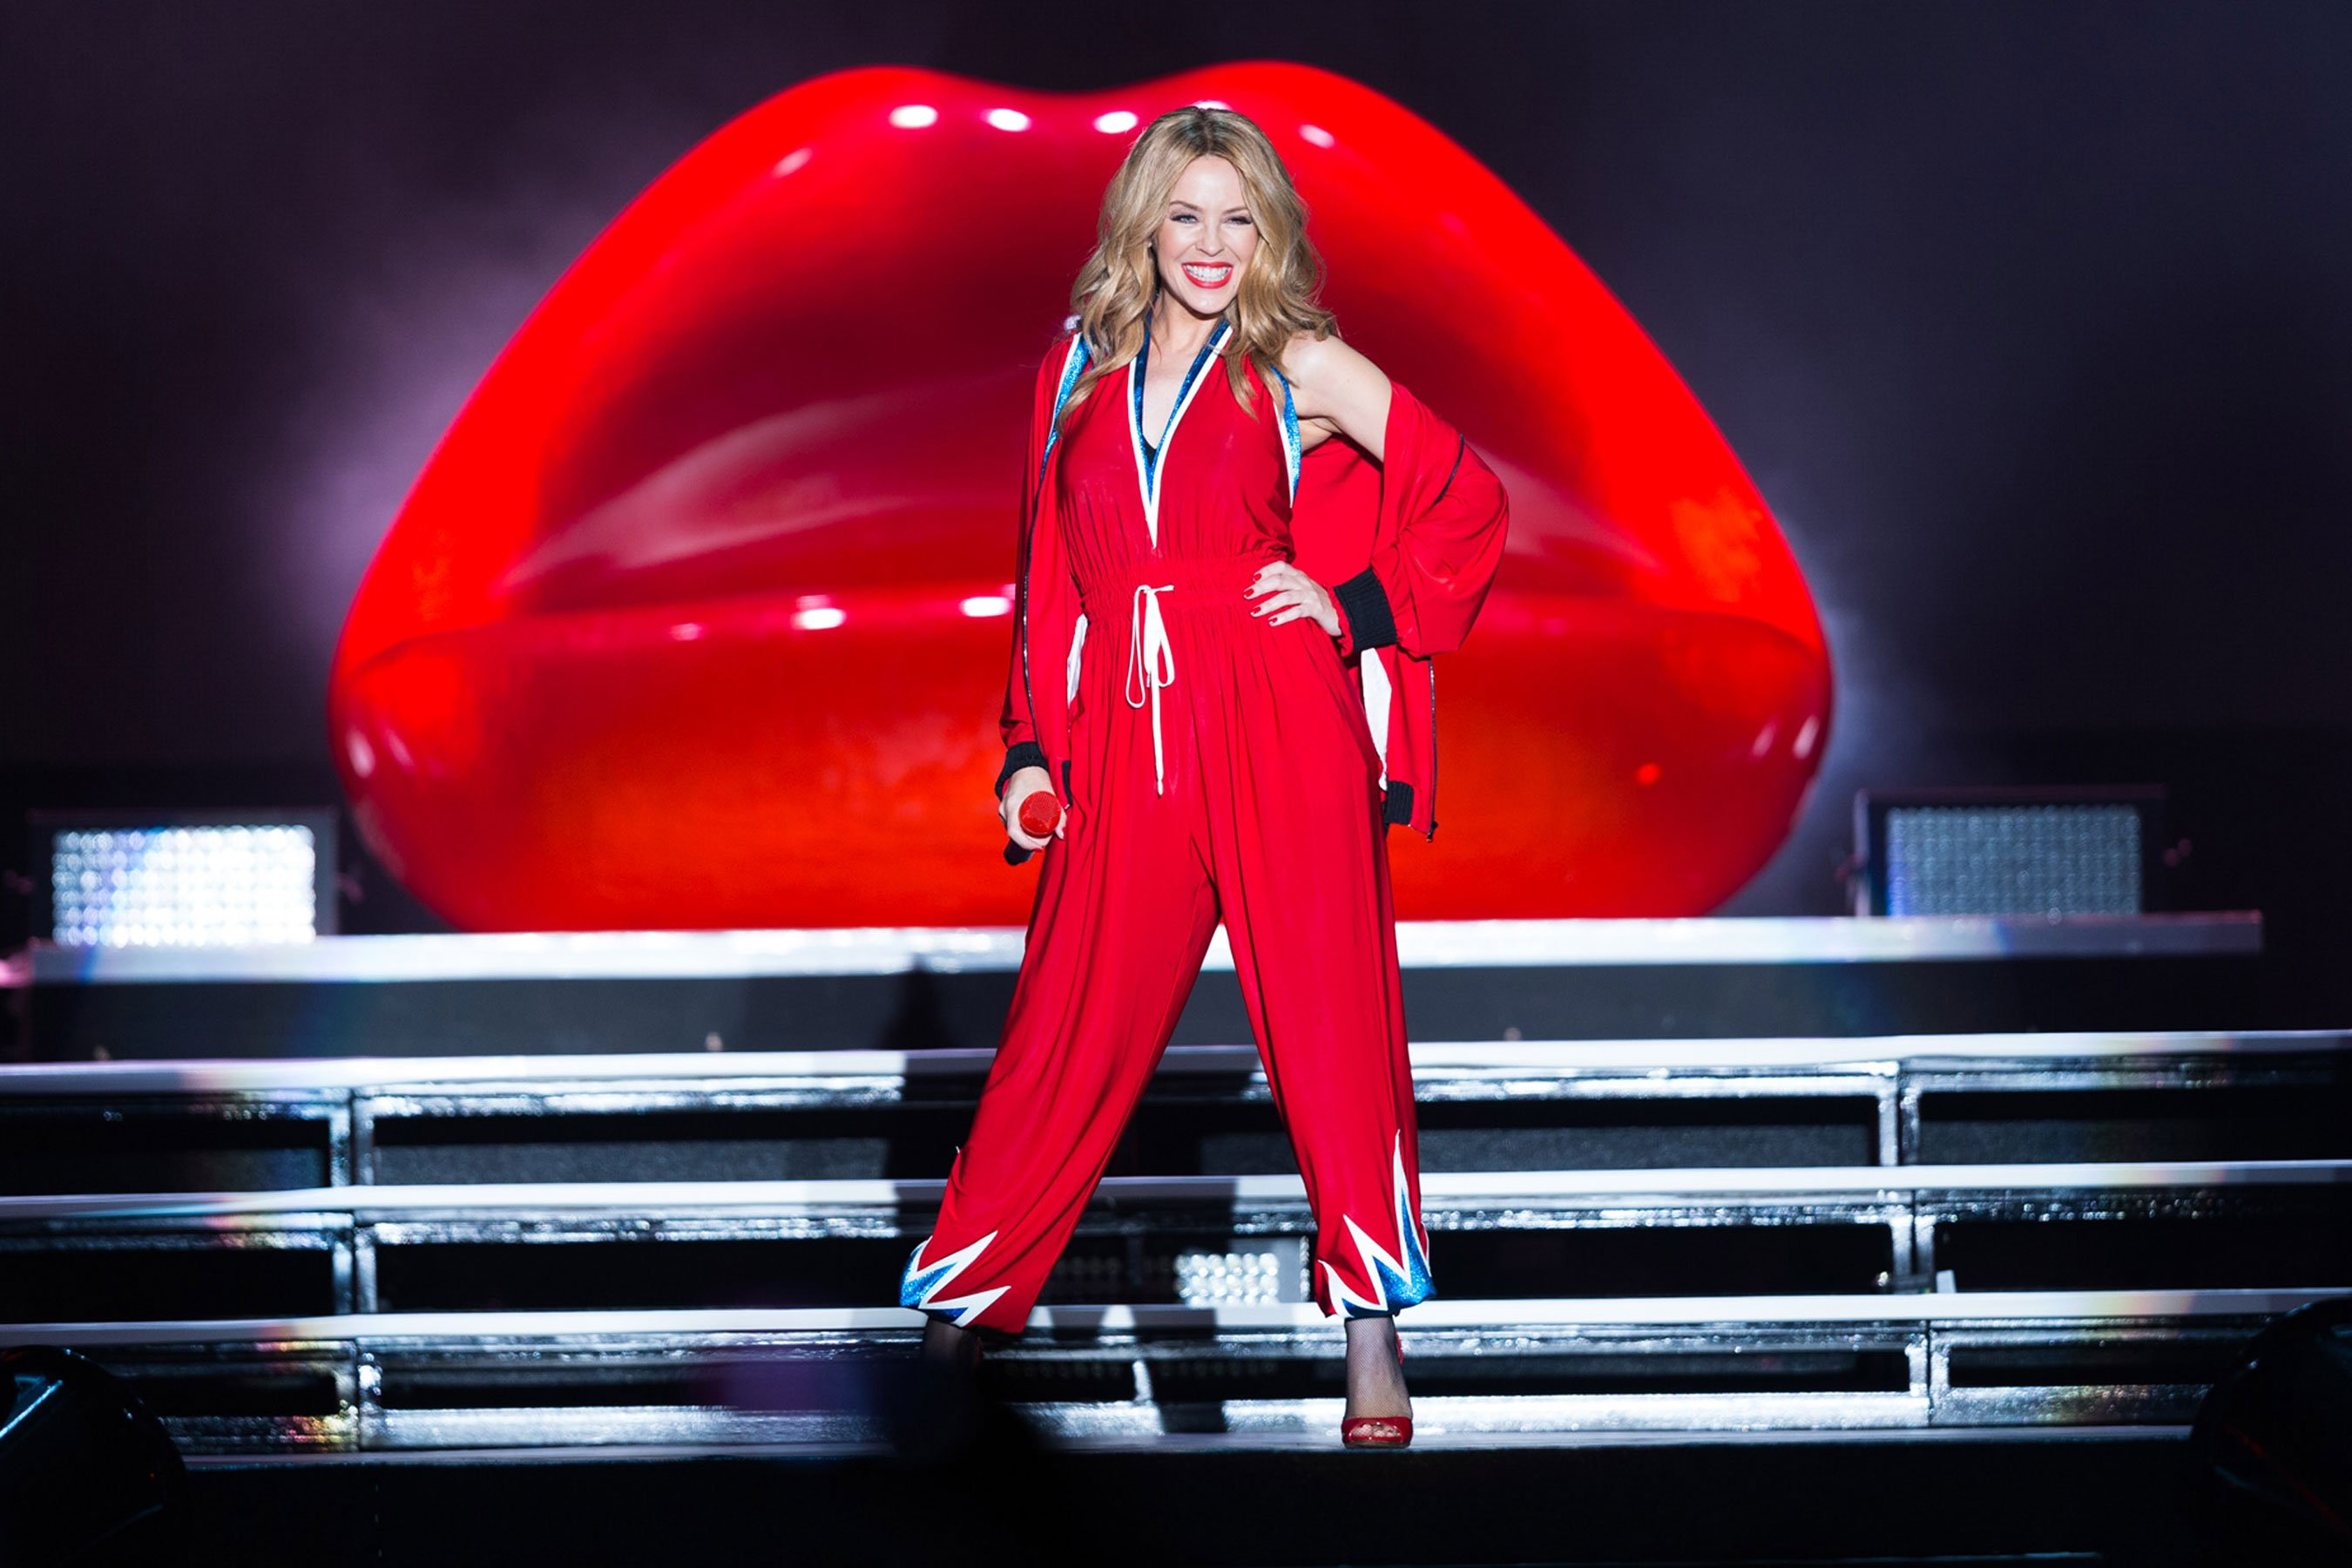 Kylie Minogue on new 'Golden' album, Nashville, and Dolly Parton inspirations